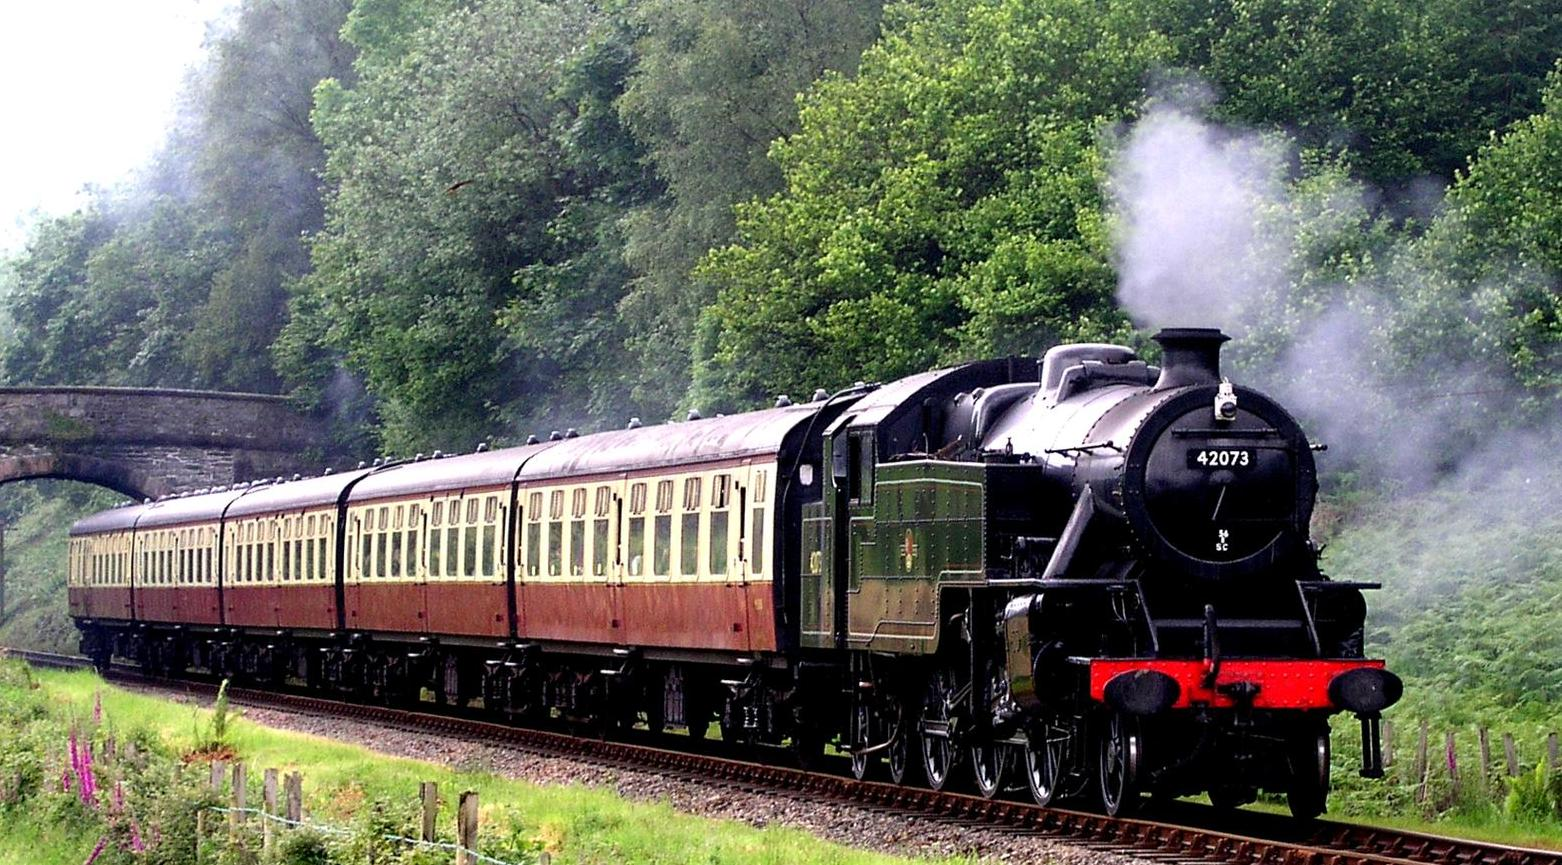 Haverthwaite Railway steam train